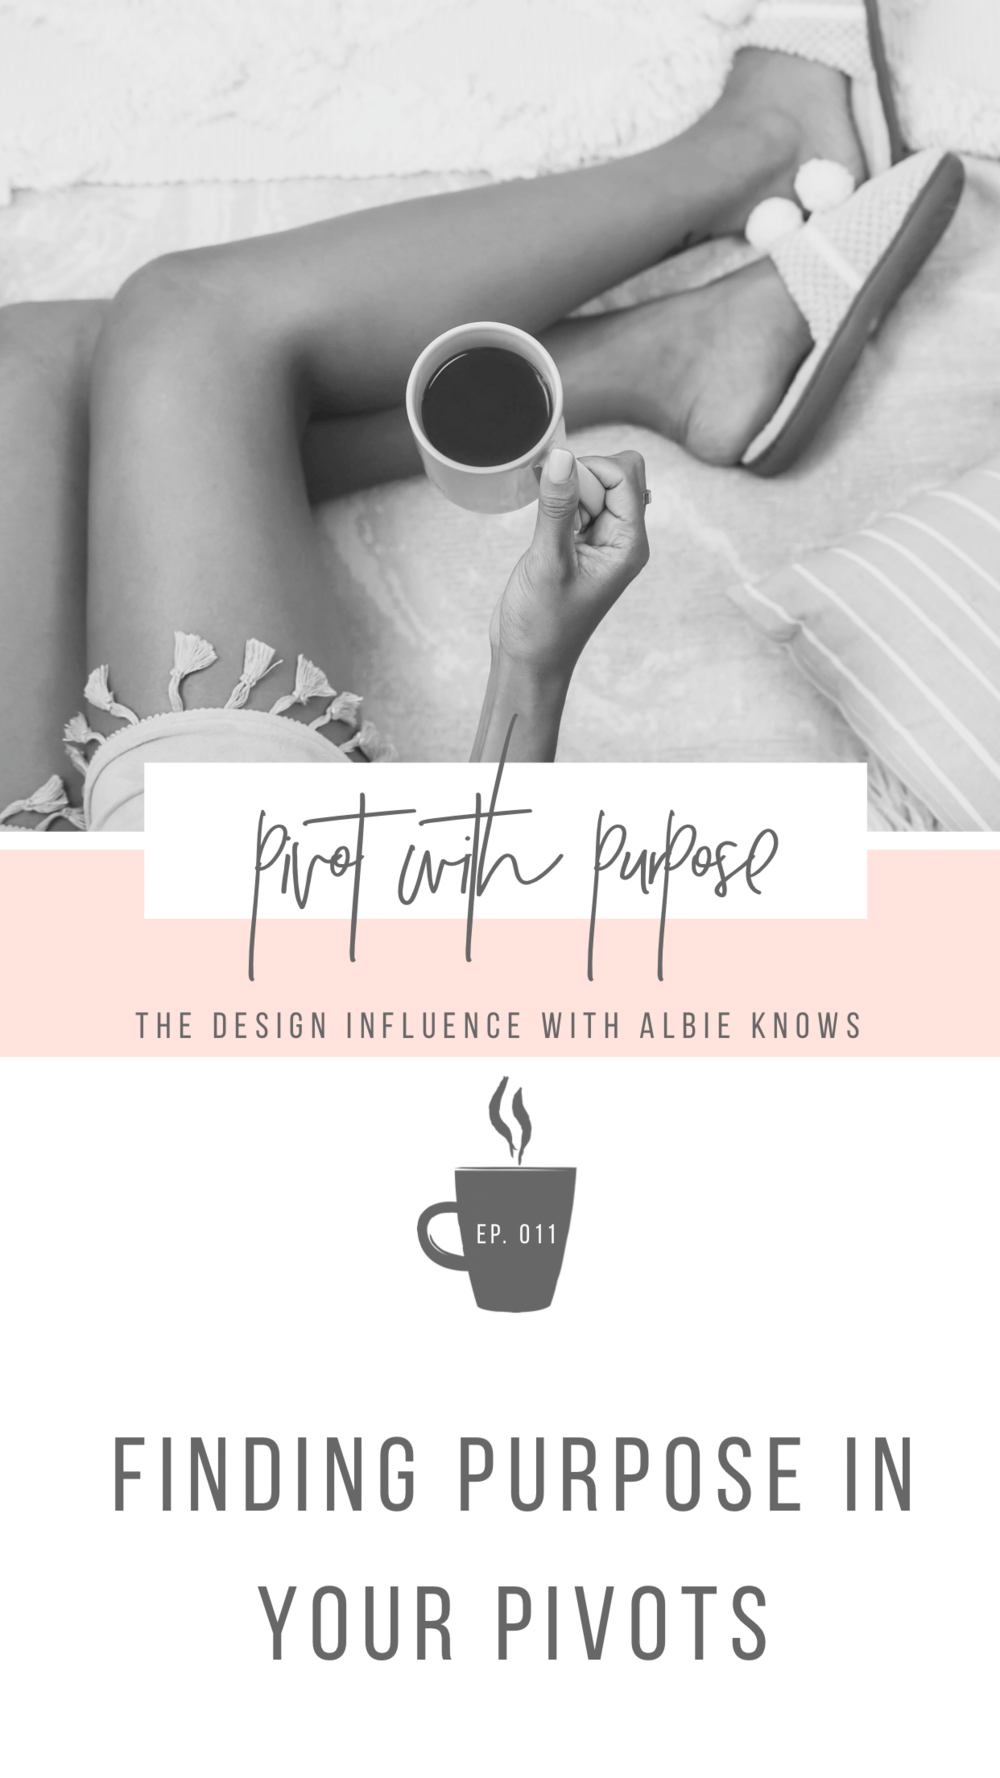 Episode 011: Finding Purpose in Your Pivots